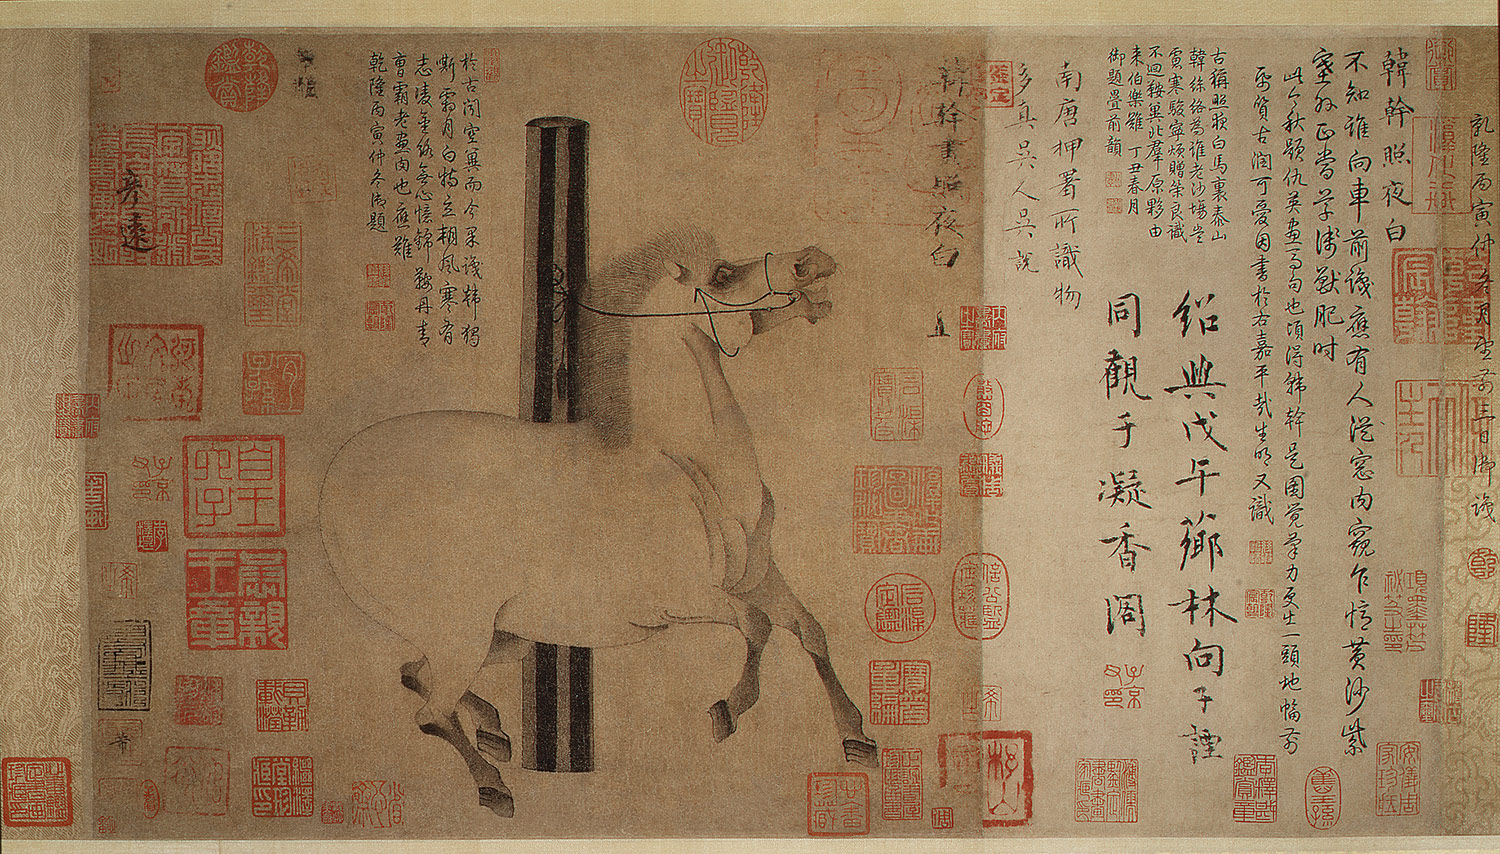 tang dynasty essay The empress who effectively ruled the tang dynasty empire had to fight against  all-male officials, who described her as 'a hen that crowed.